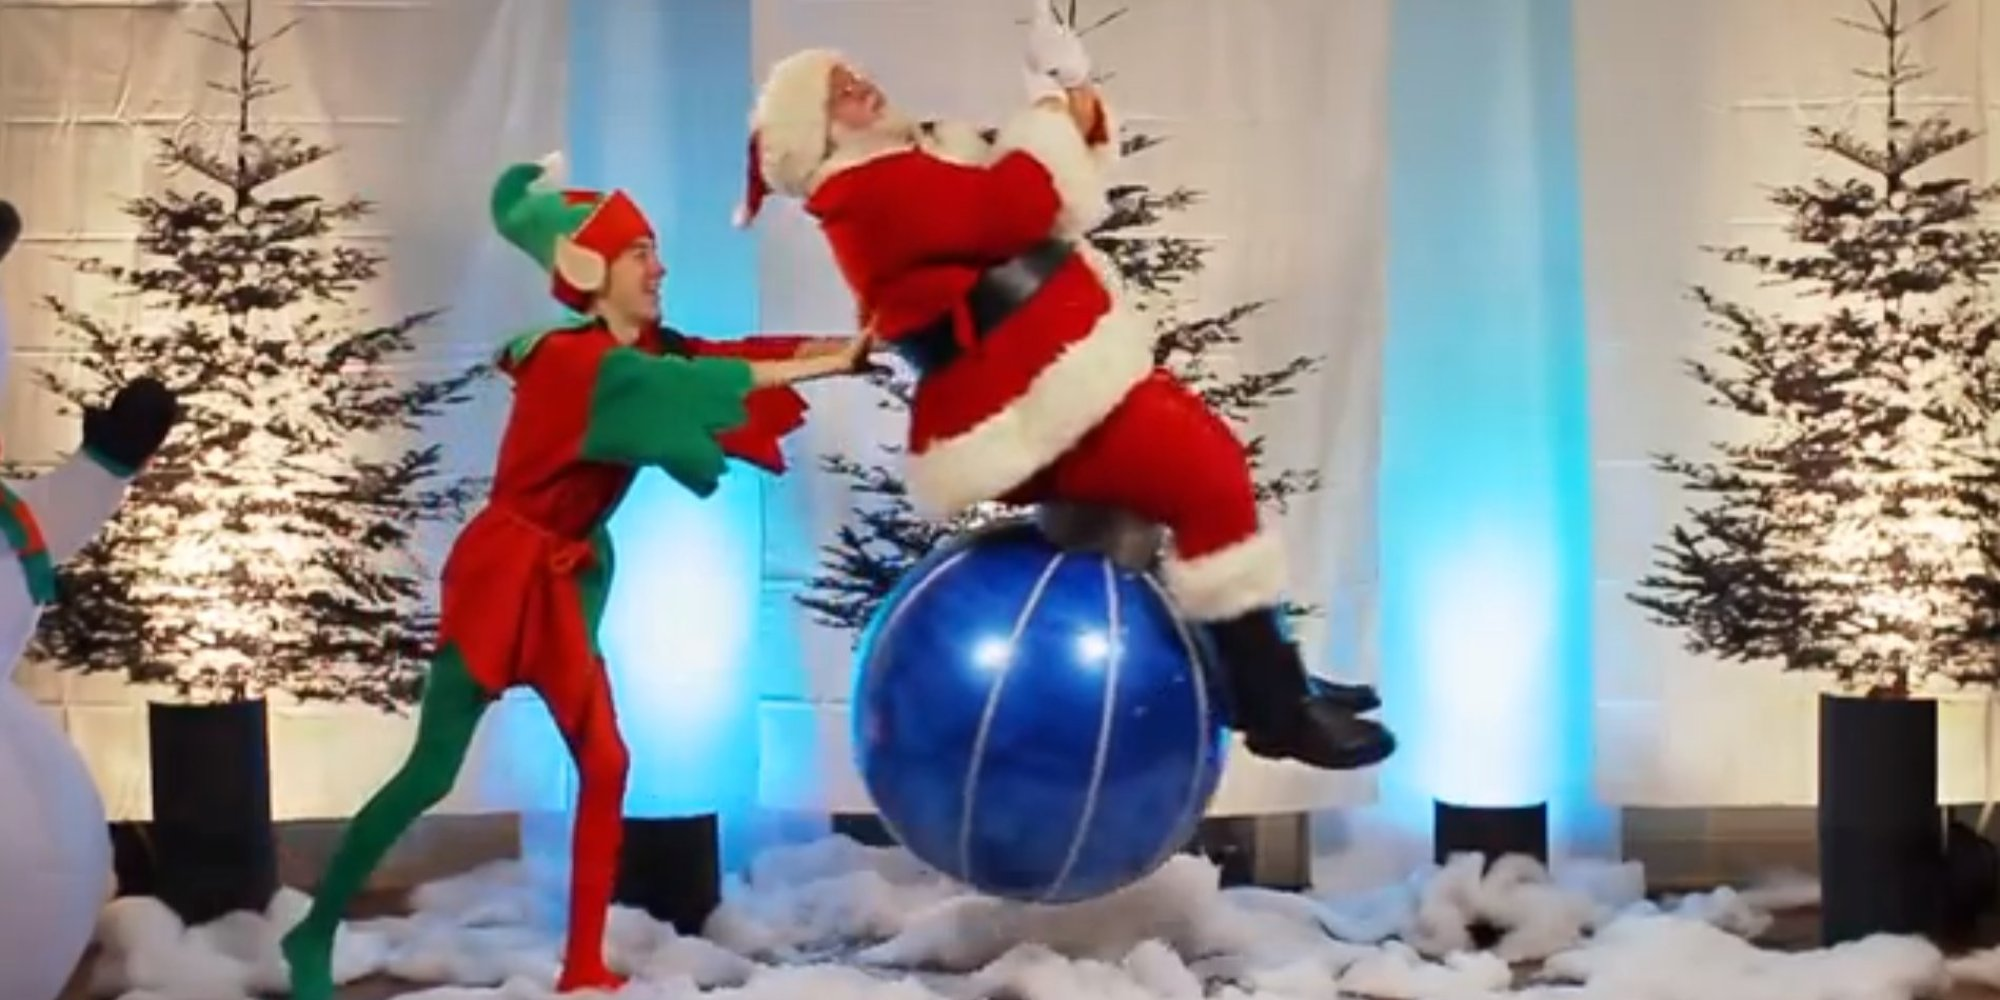 miley cyrus 39 s 39 wrecking ball 39 gets a festive parody as 39 deck the halls 39 video huffpost uk. Black Bedroom Furniture Sets. Home Design Ideas